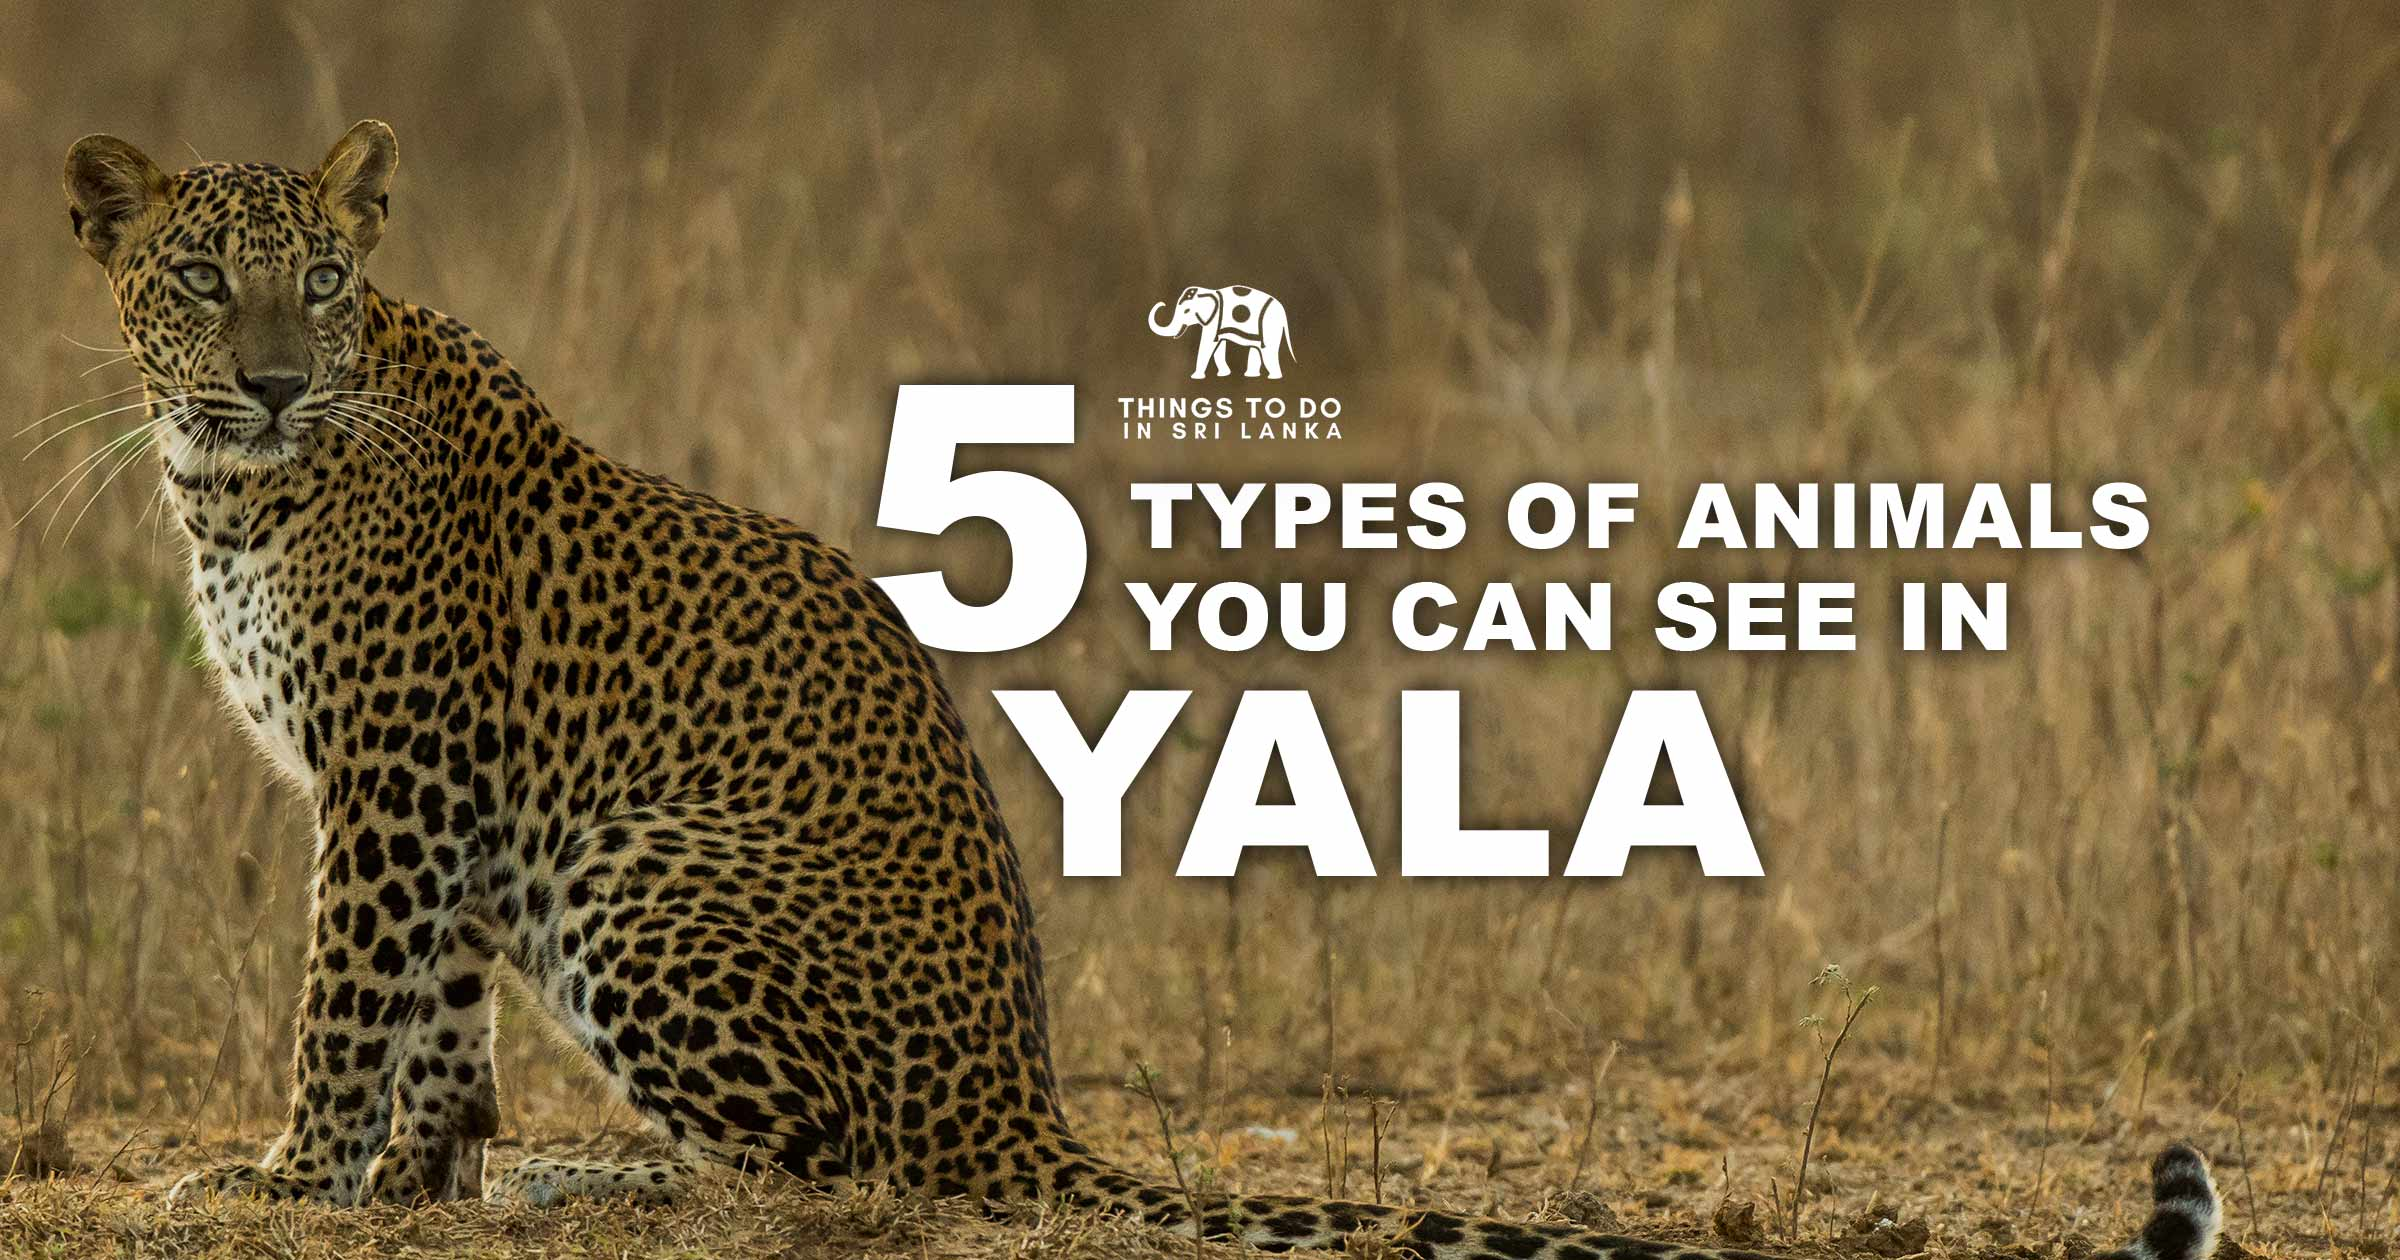 5 types of animals you can see in Yala